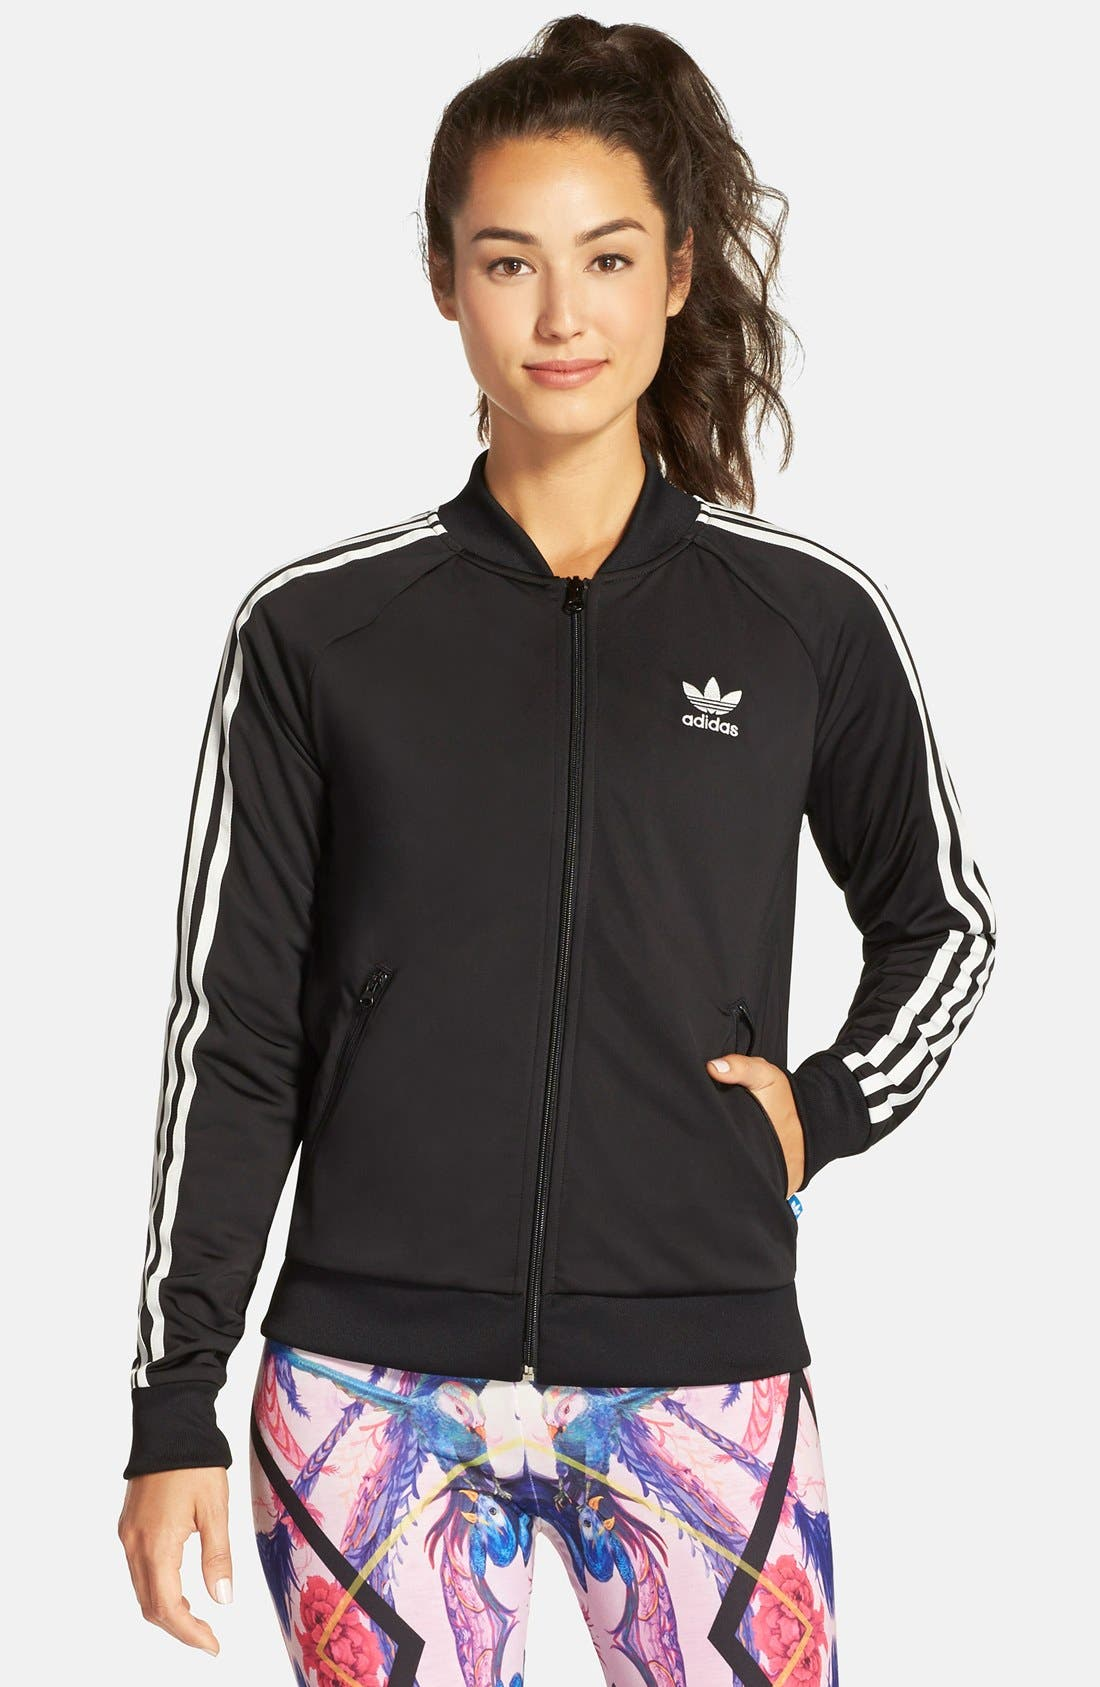 Originals 'Superstar' 3-Stripes Track Jacket,                             Alternate thumbnail 3, color,                             001